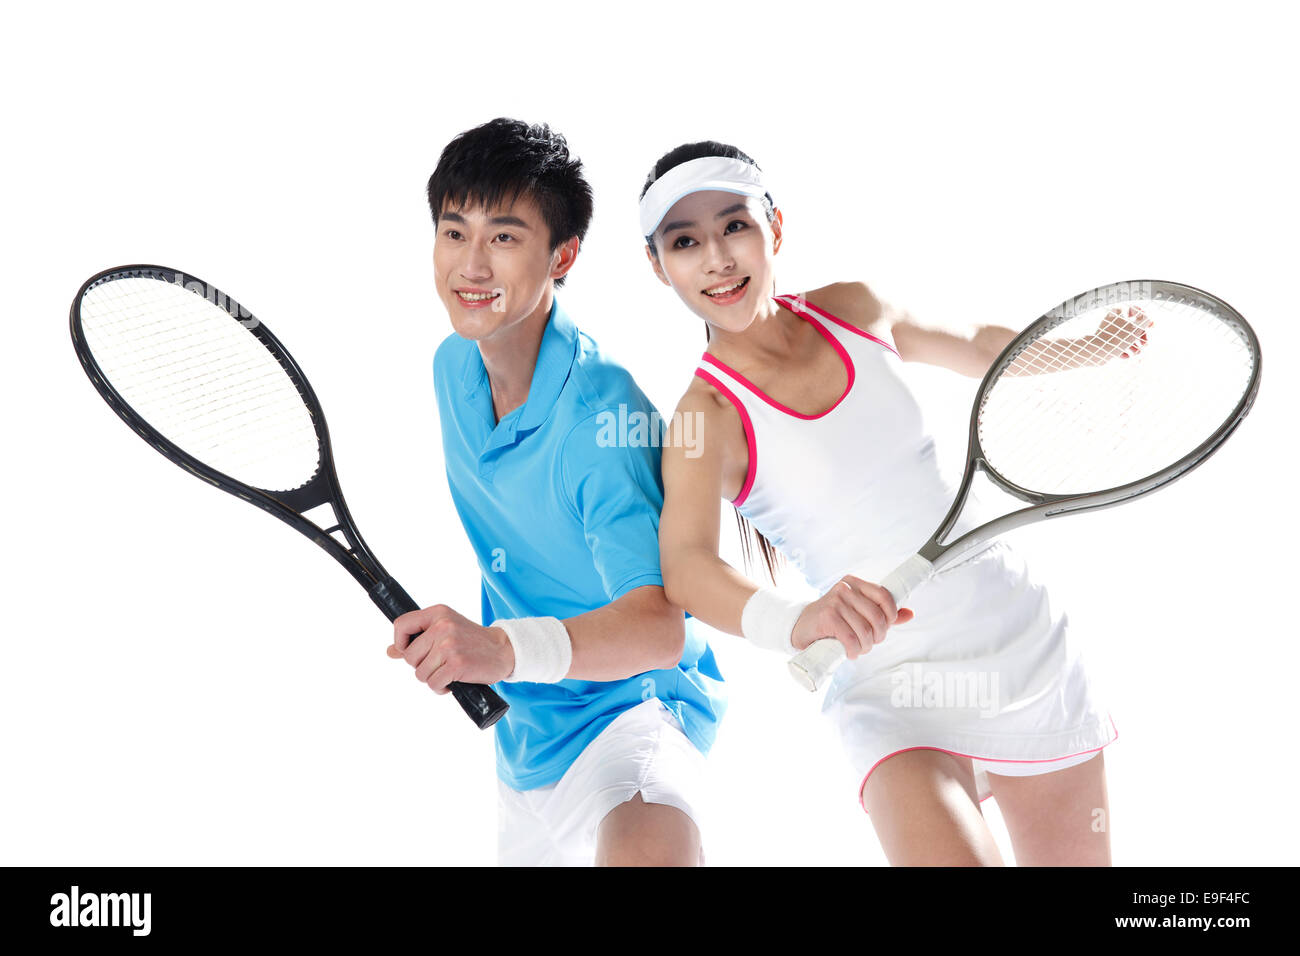 Joueurs de tennis Photo Stock